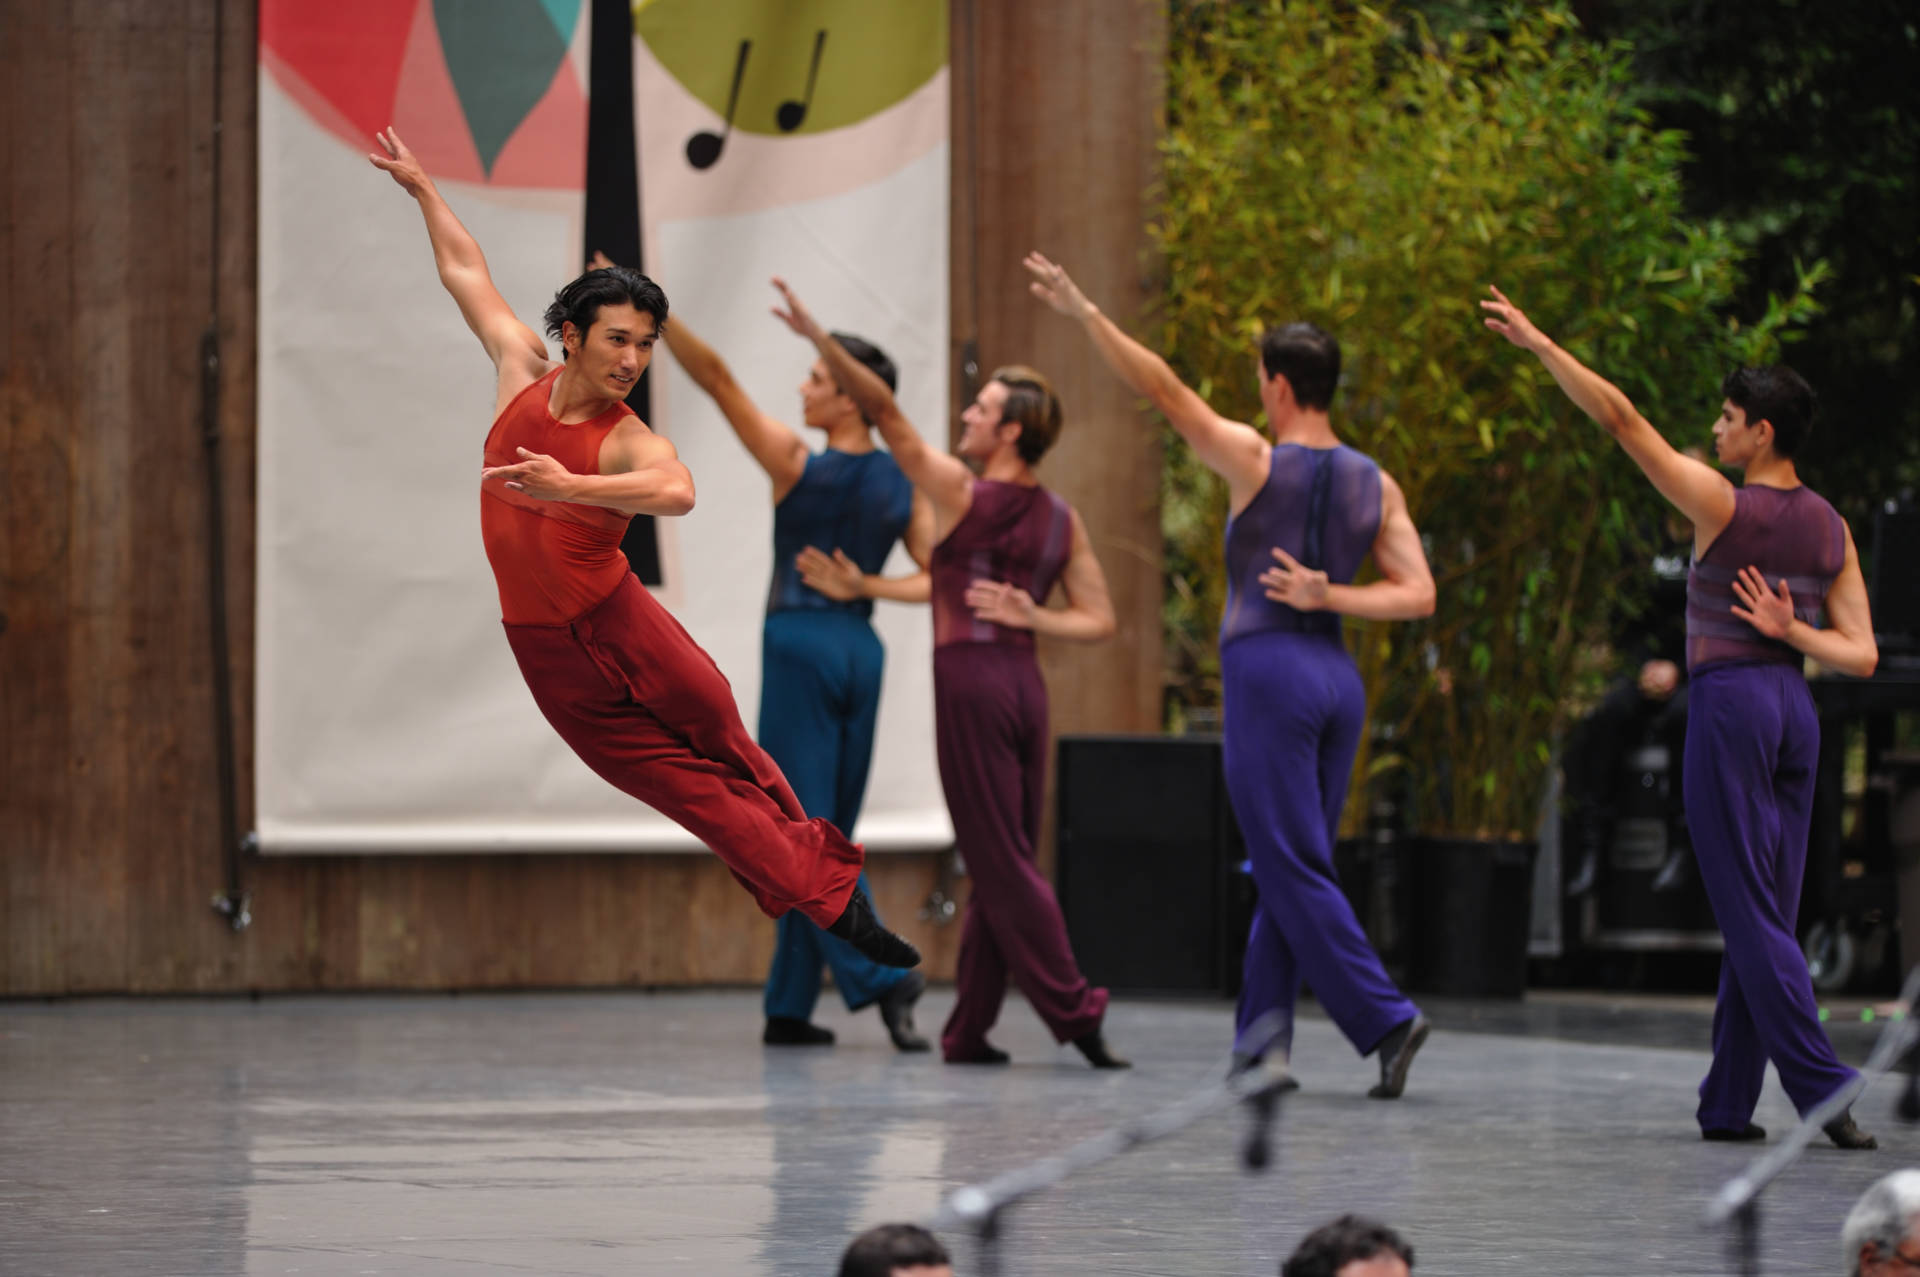 Hansuke Yamamoto and other dancers of San Francisco Ballet in Christopher Wheeldon's Rush© at the 2016 Stern Grove Festival  (Photo: Erik Tomasson)